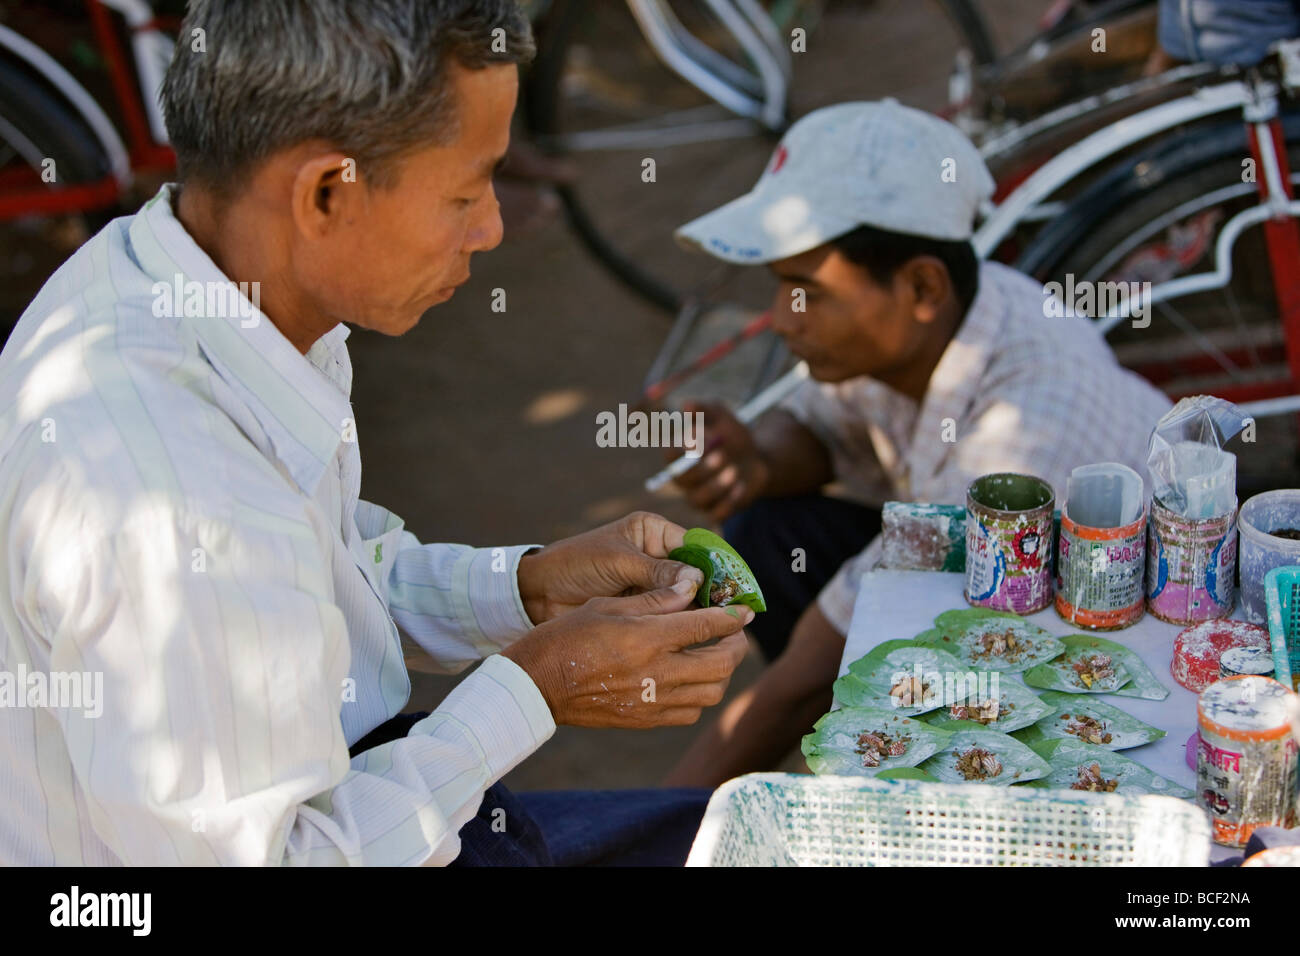 Myanmar, Burma, Yangon. The owner of a small street stall prepares beetle nut wrapped in lime-coated betel leaves. - Stock Image